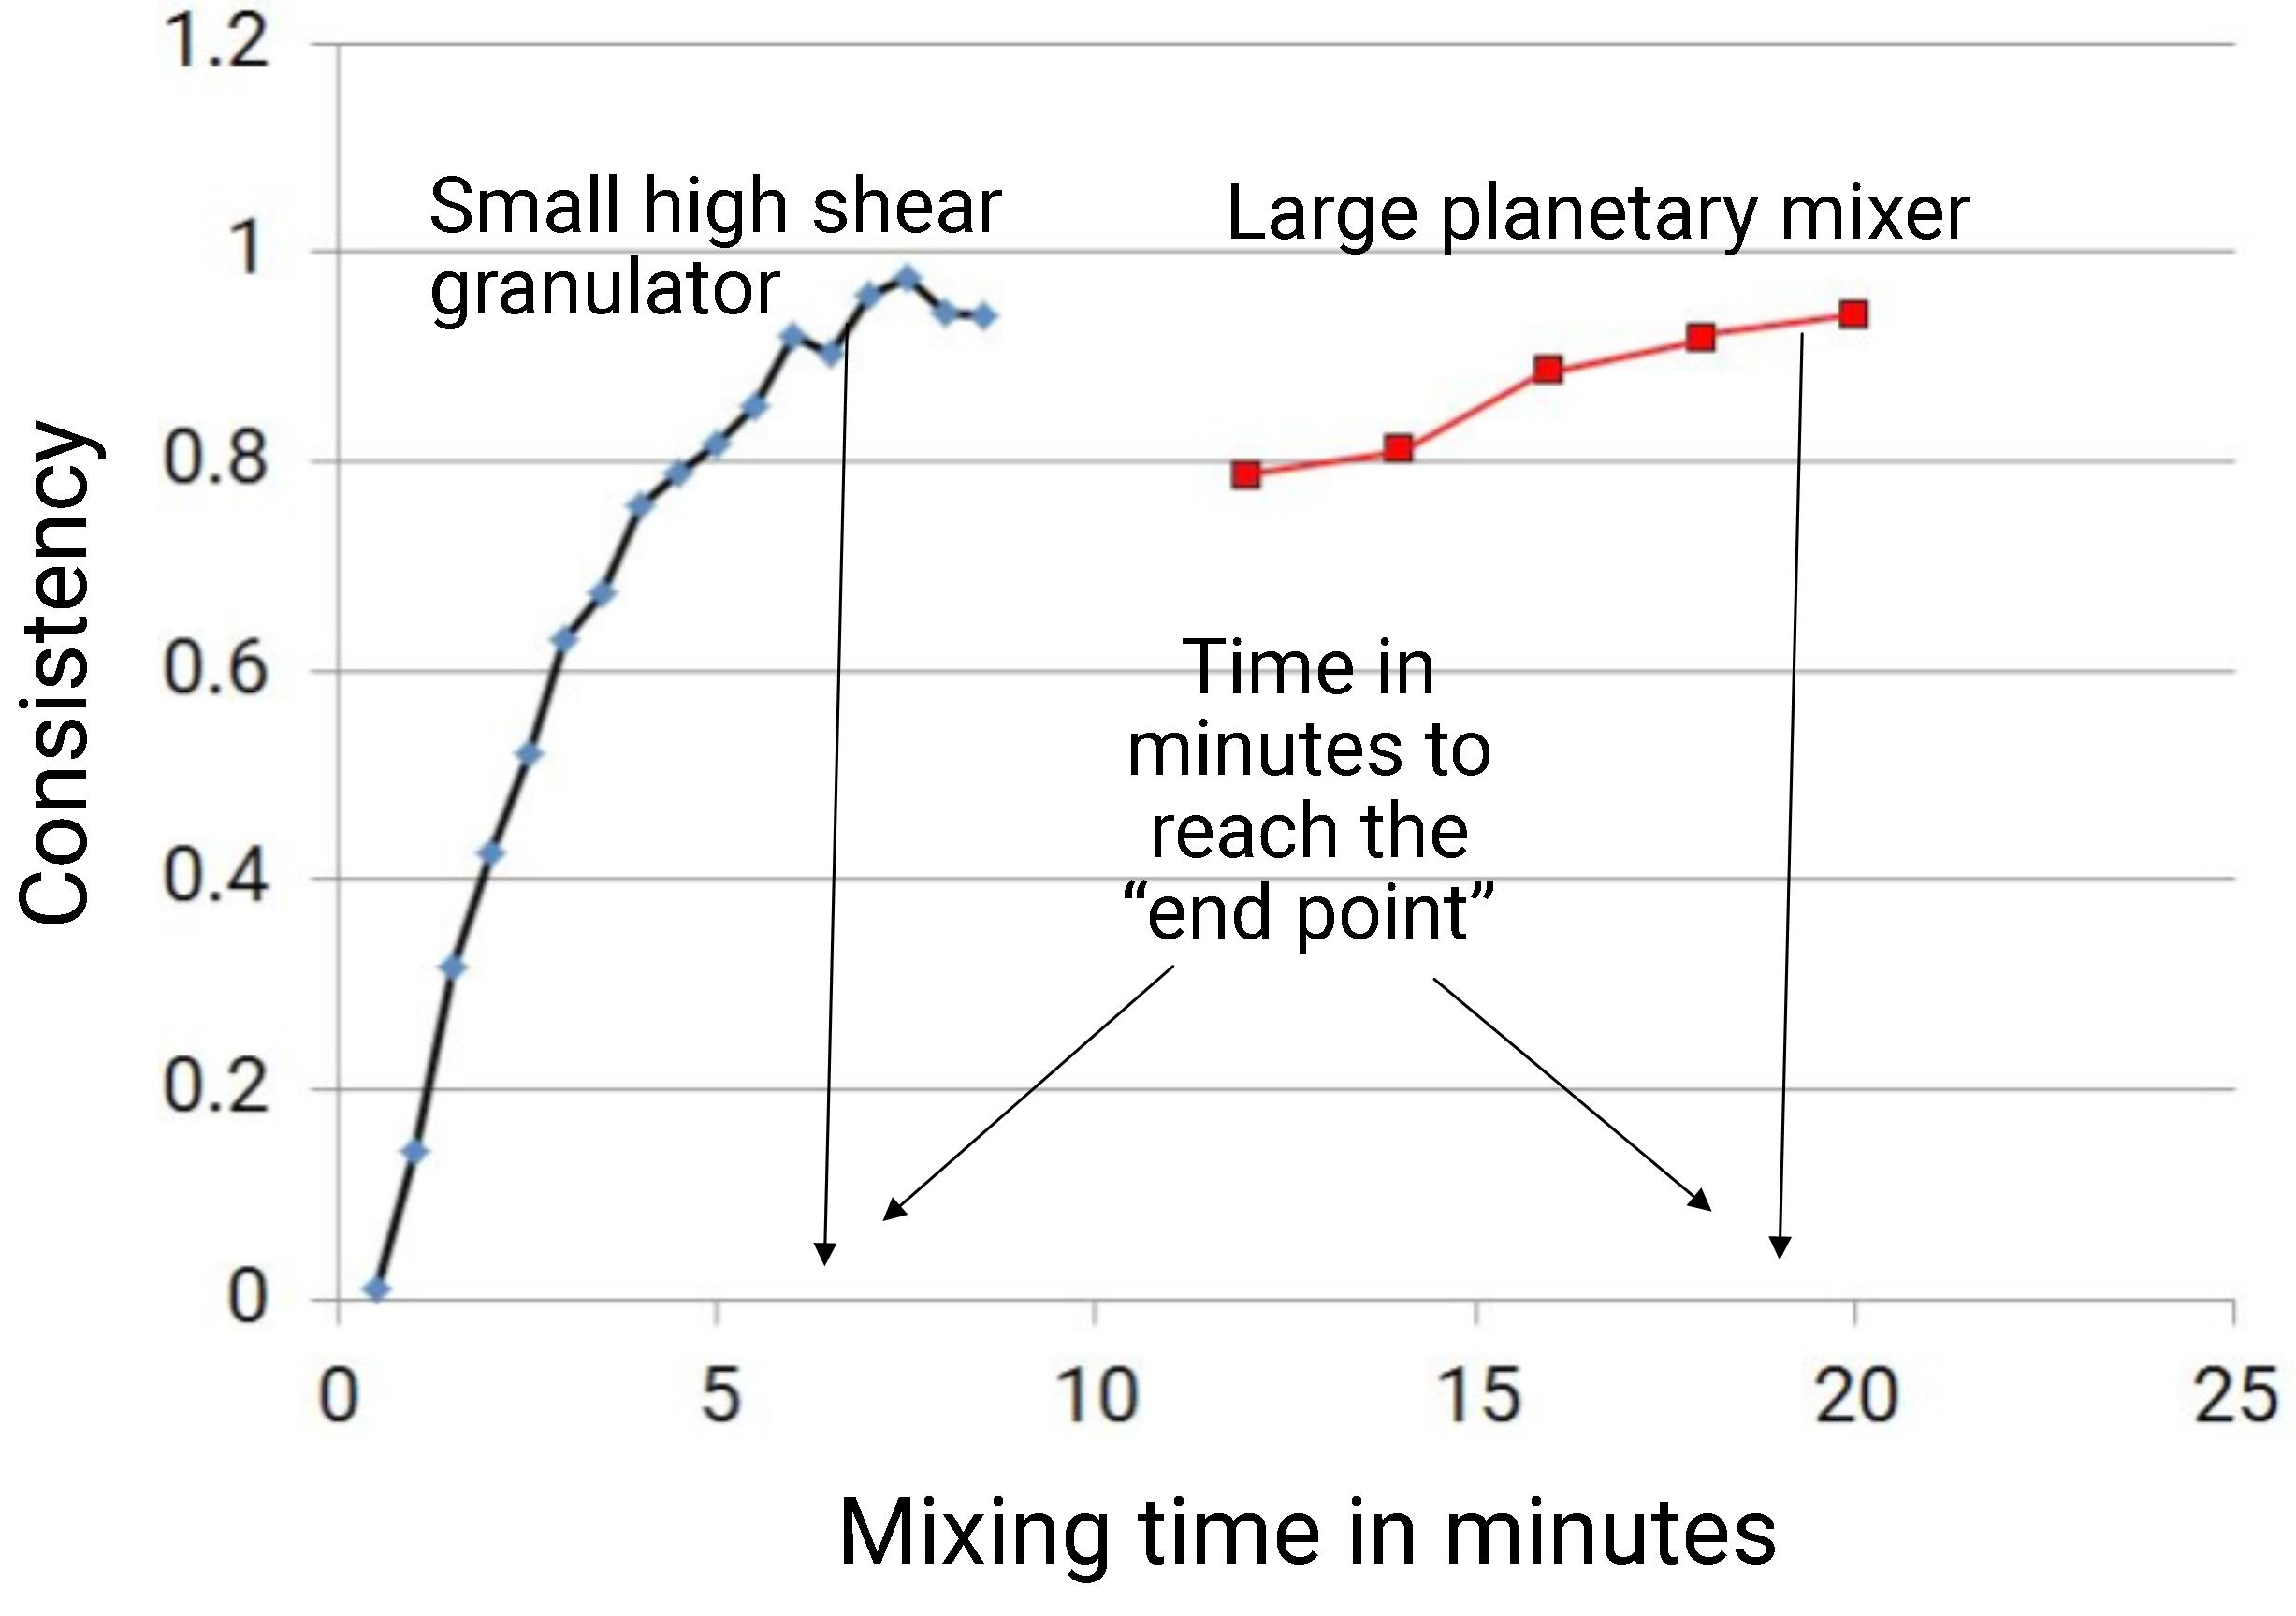 Time in minutes to reach end point in high shear and planetary mixer